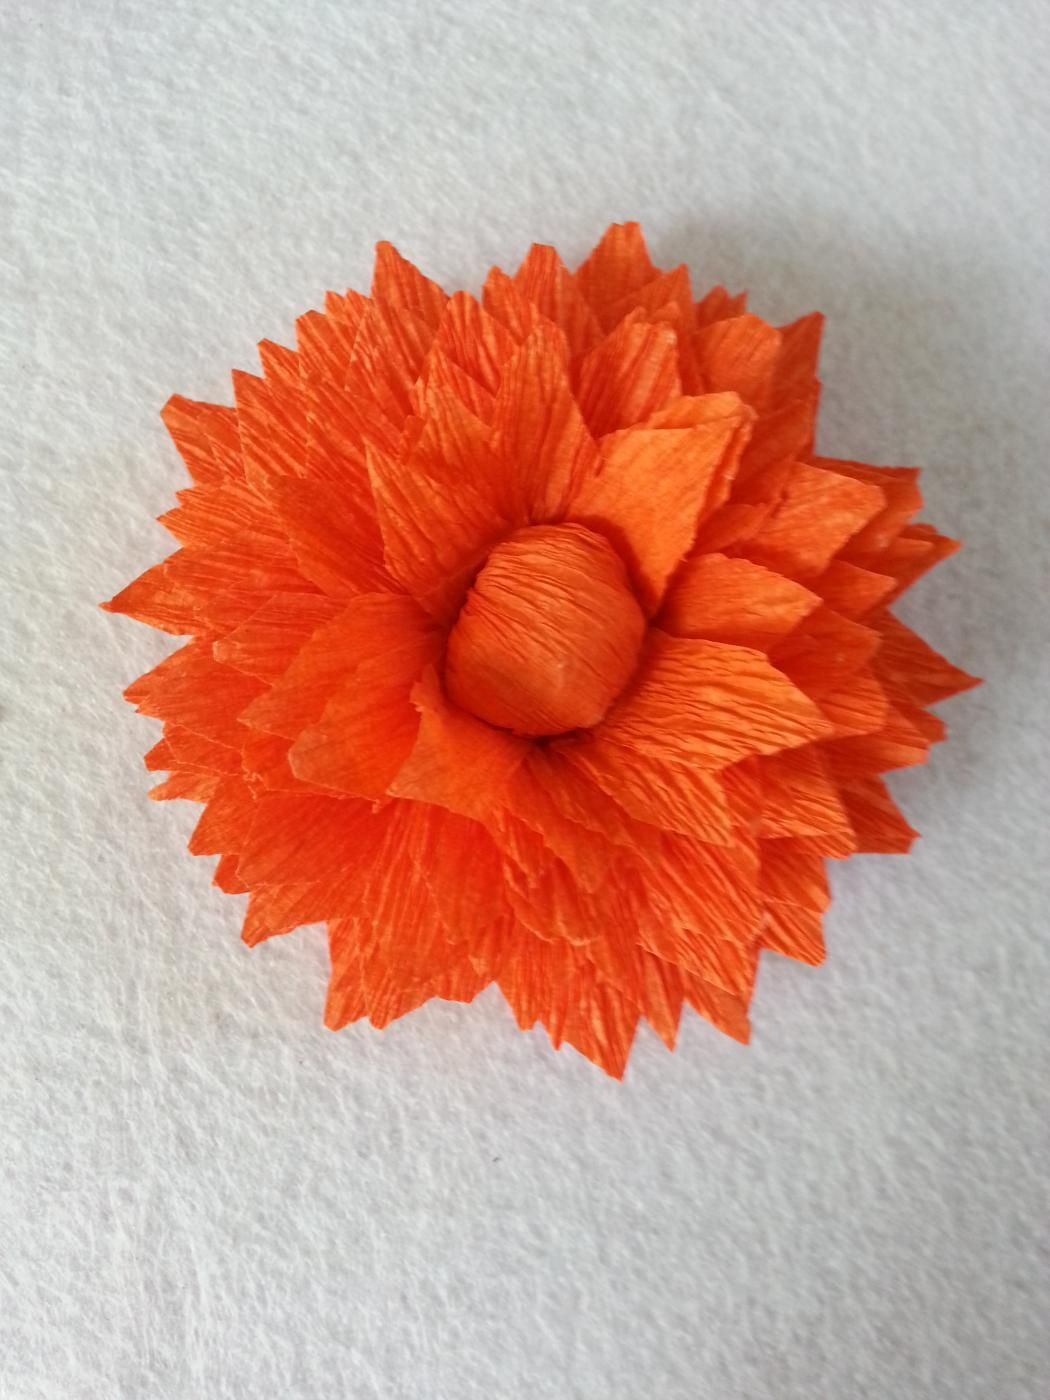 Diy crepe paper flower using streamers paper flowers pinterest learn how to make this easy flower using crepe paper streamers you can get these streamers at the dollar stores or craft stores they are very inexpensive mightylinksfo